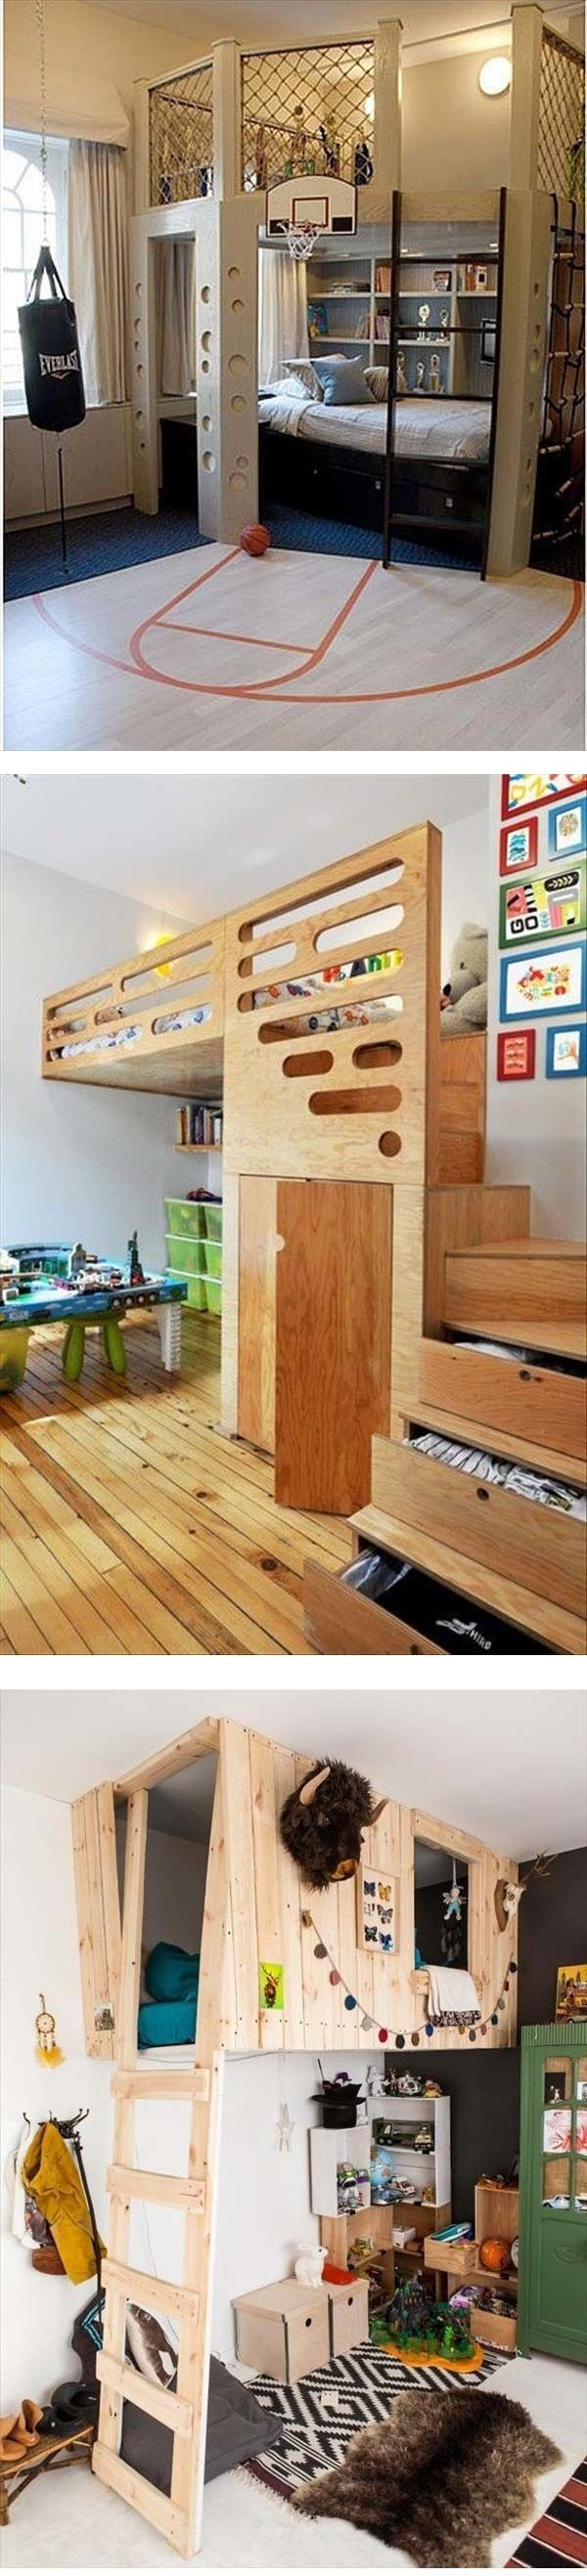 Love the floating bed in the last picture, but it'd be a pain in the butt to make the bed...>>>Kids Bedroom Ideas Brought To Life | Rotten Panda